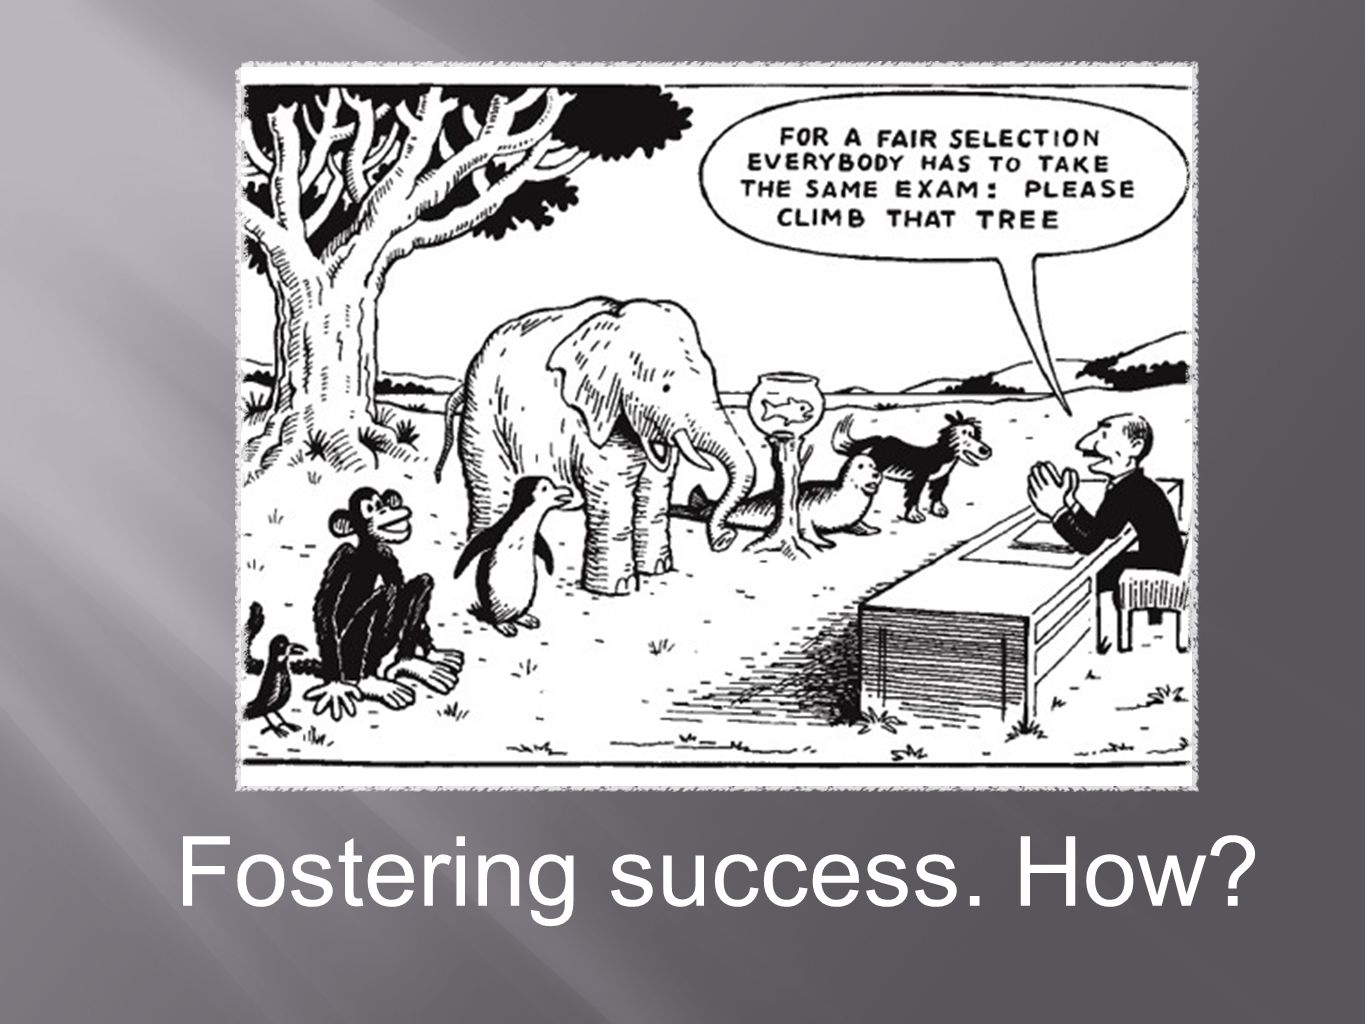 For Success ALL kids need: To be challenged To be bored (Blue Sky times…) To be unique (appreciated) To fit in (belong) To feel secure (predictability) To dare to be bold (take the challenge) Extrinsic motivation (recognition) Intrinsic motivation (personal drive)